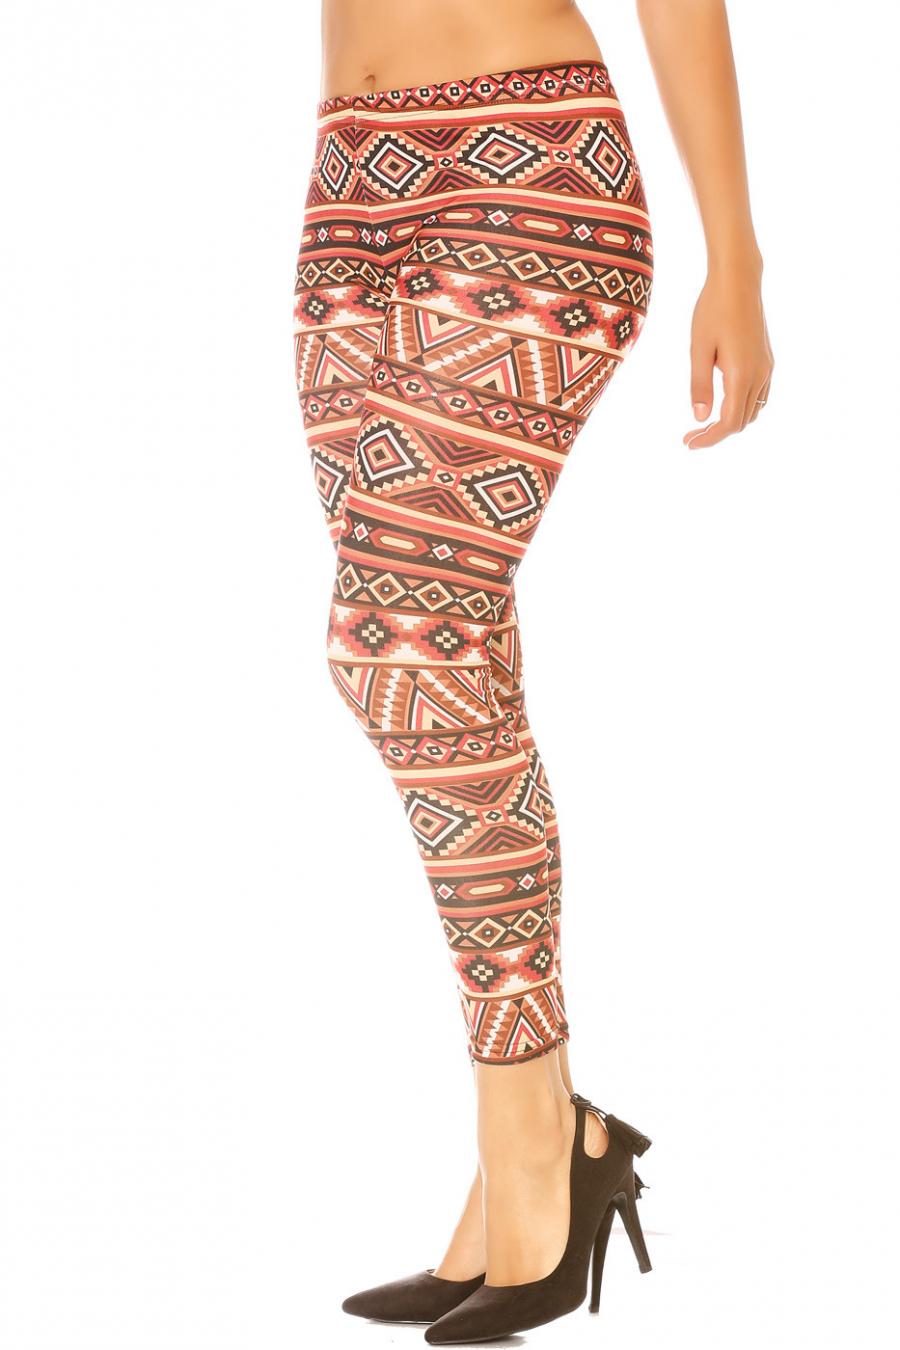 Warm colored Aztec patterned leggings. G9-230